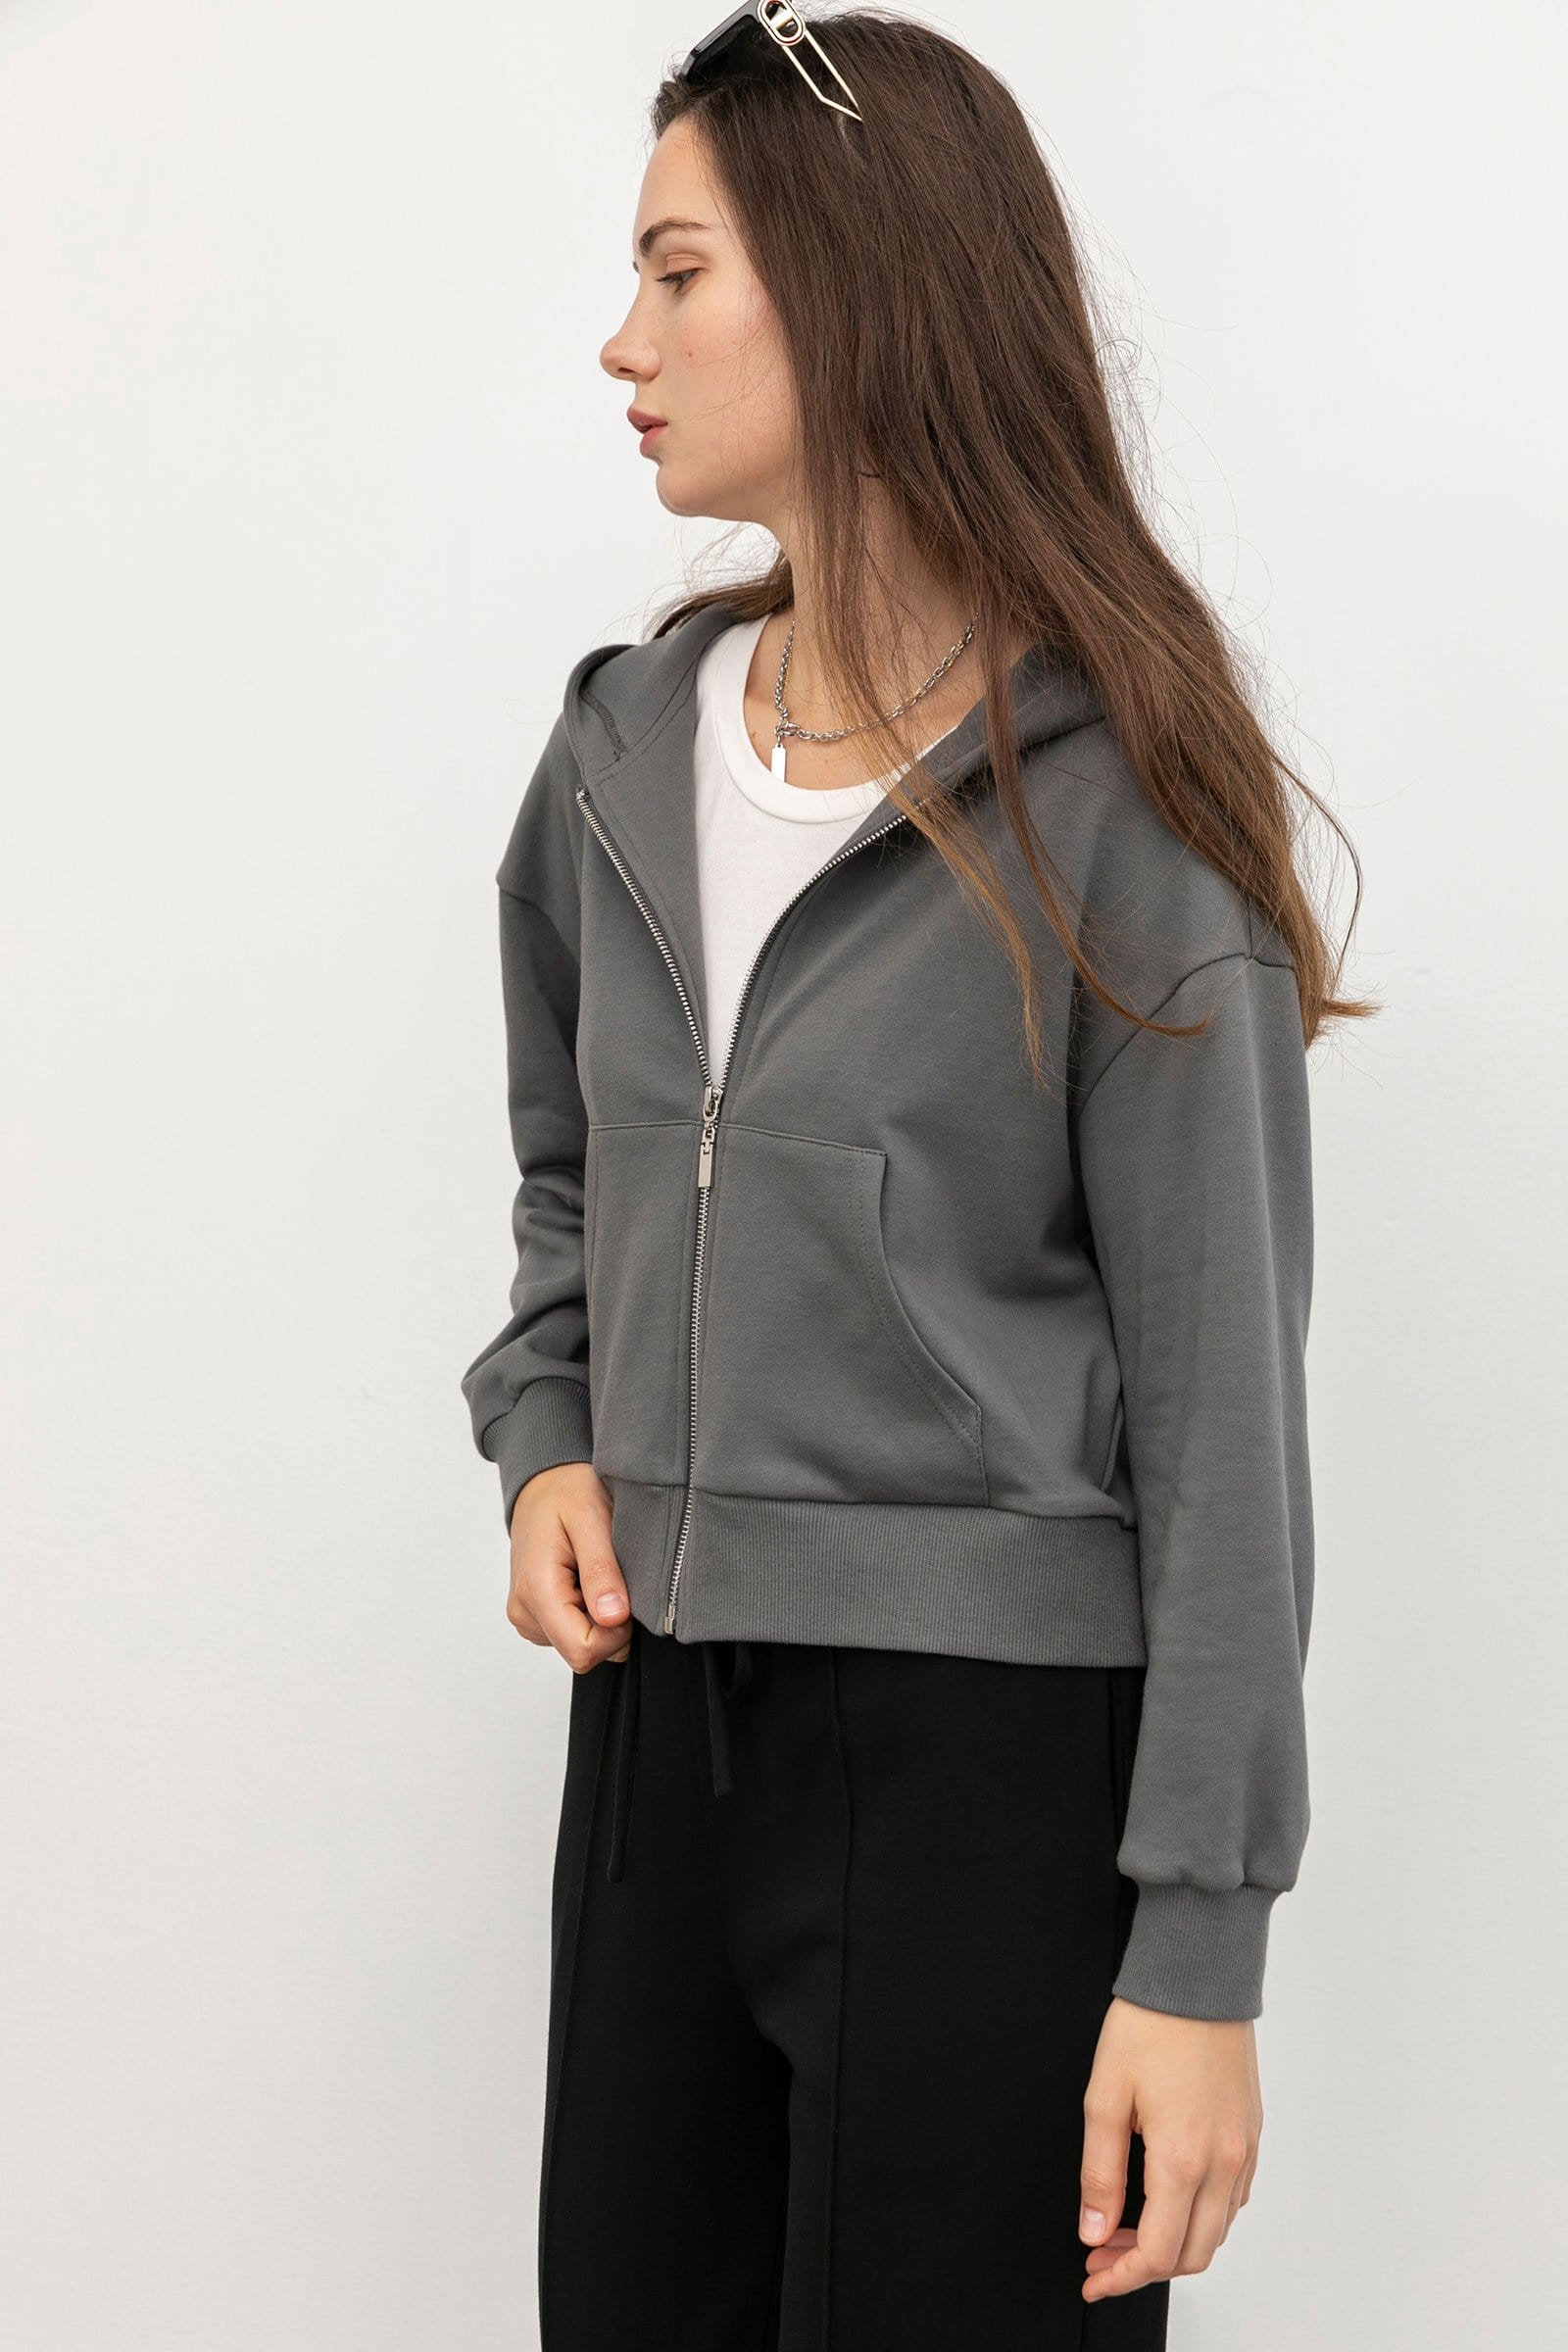 Cozy Grey Zip-up Hoodie